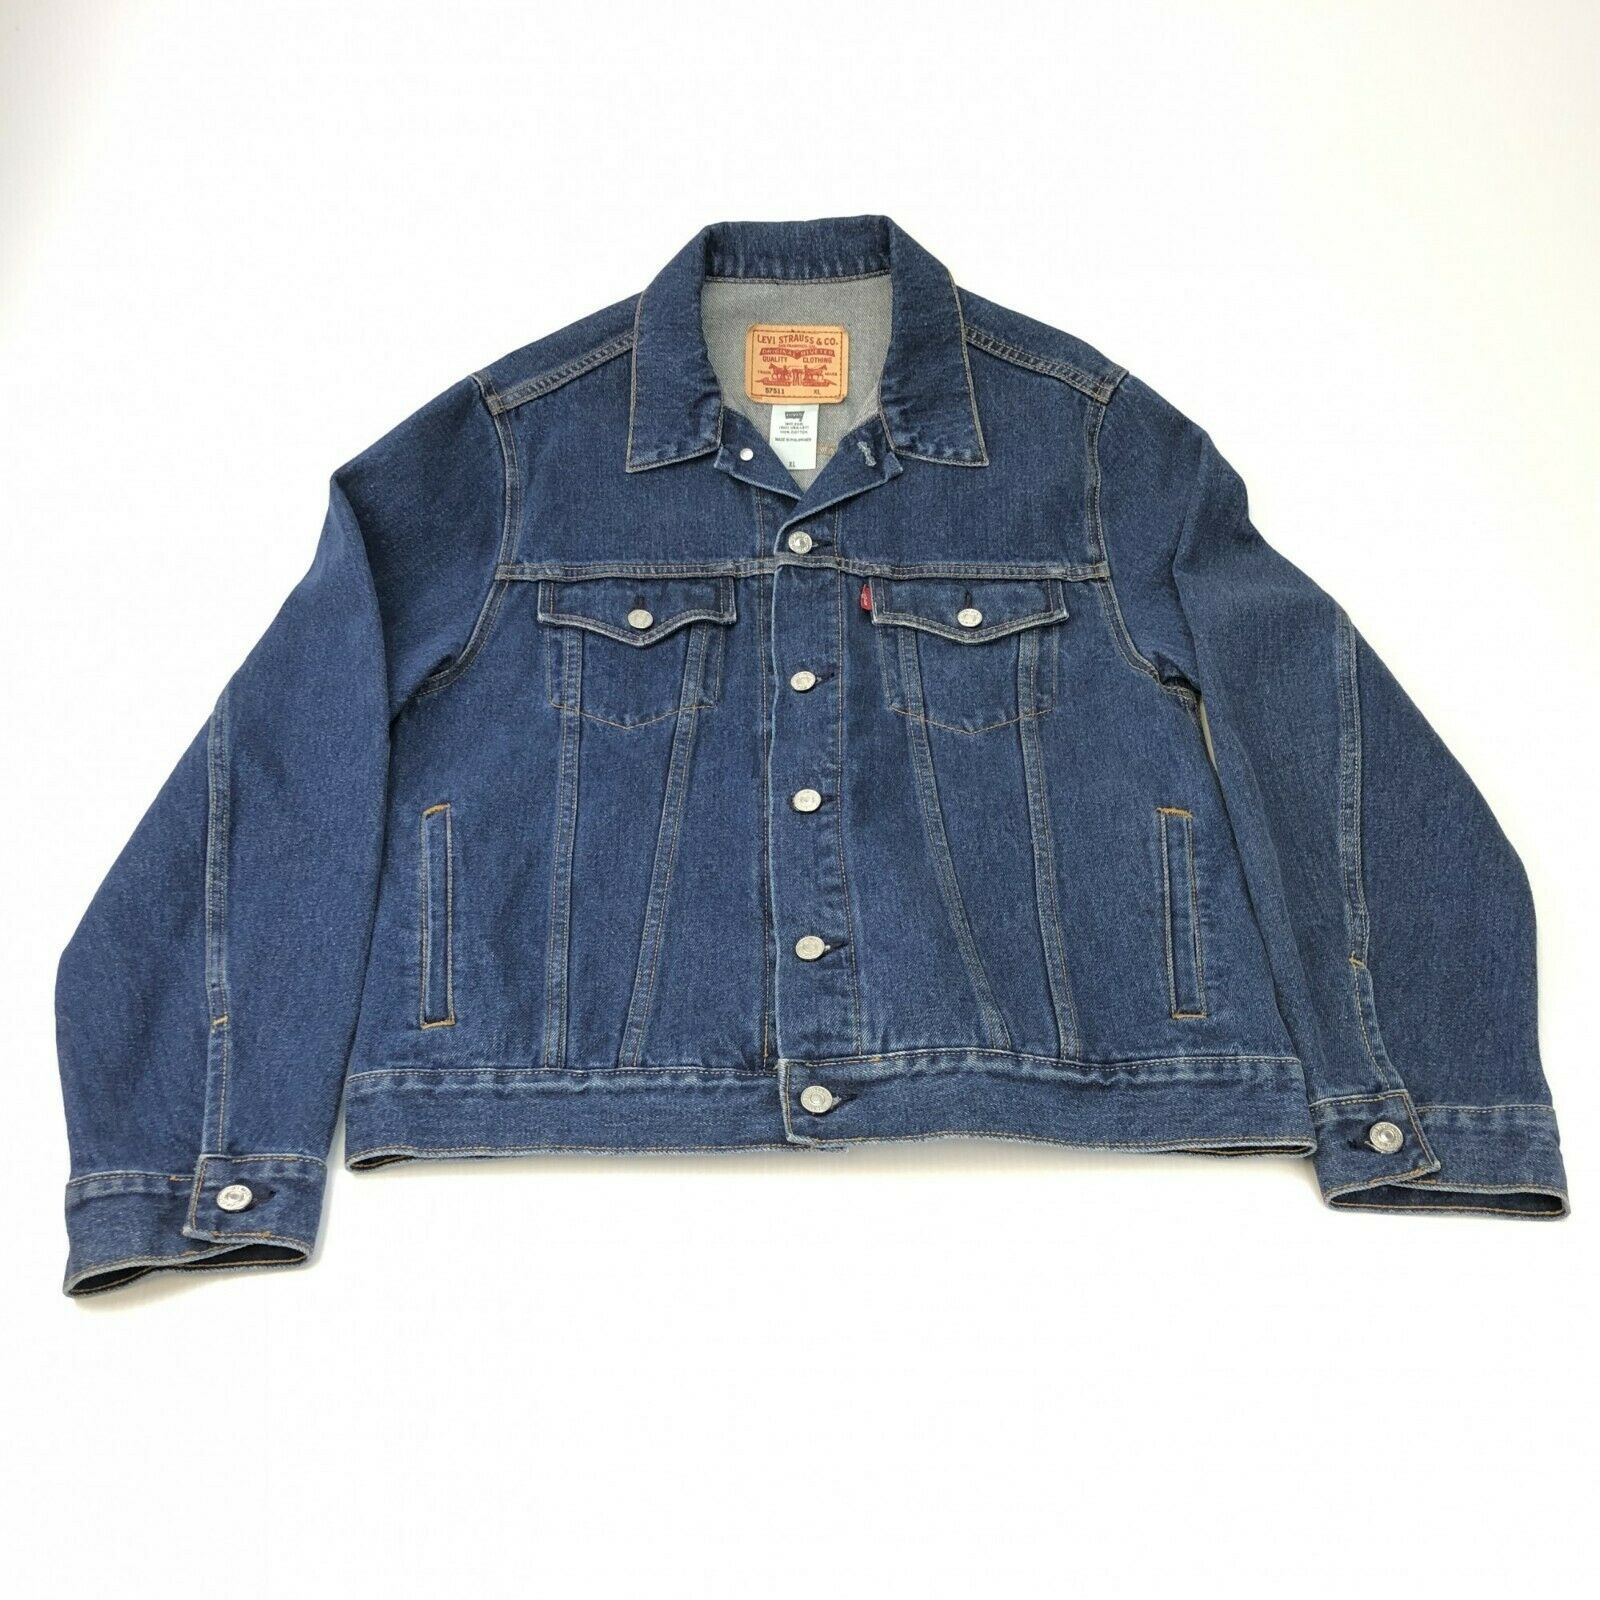 Primary image for Levis 57511 denim trucker jean jacket XL